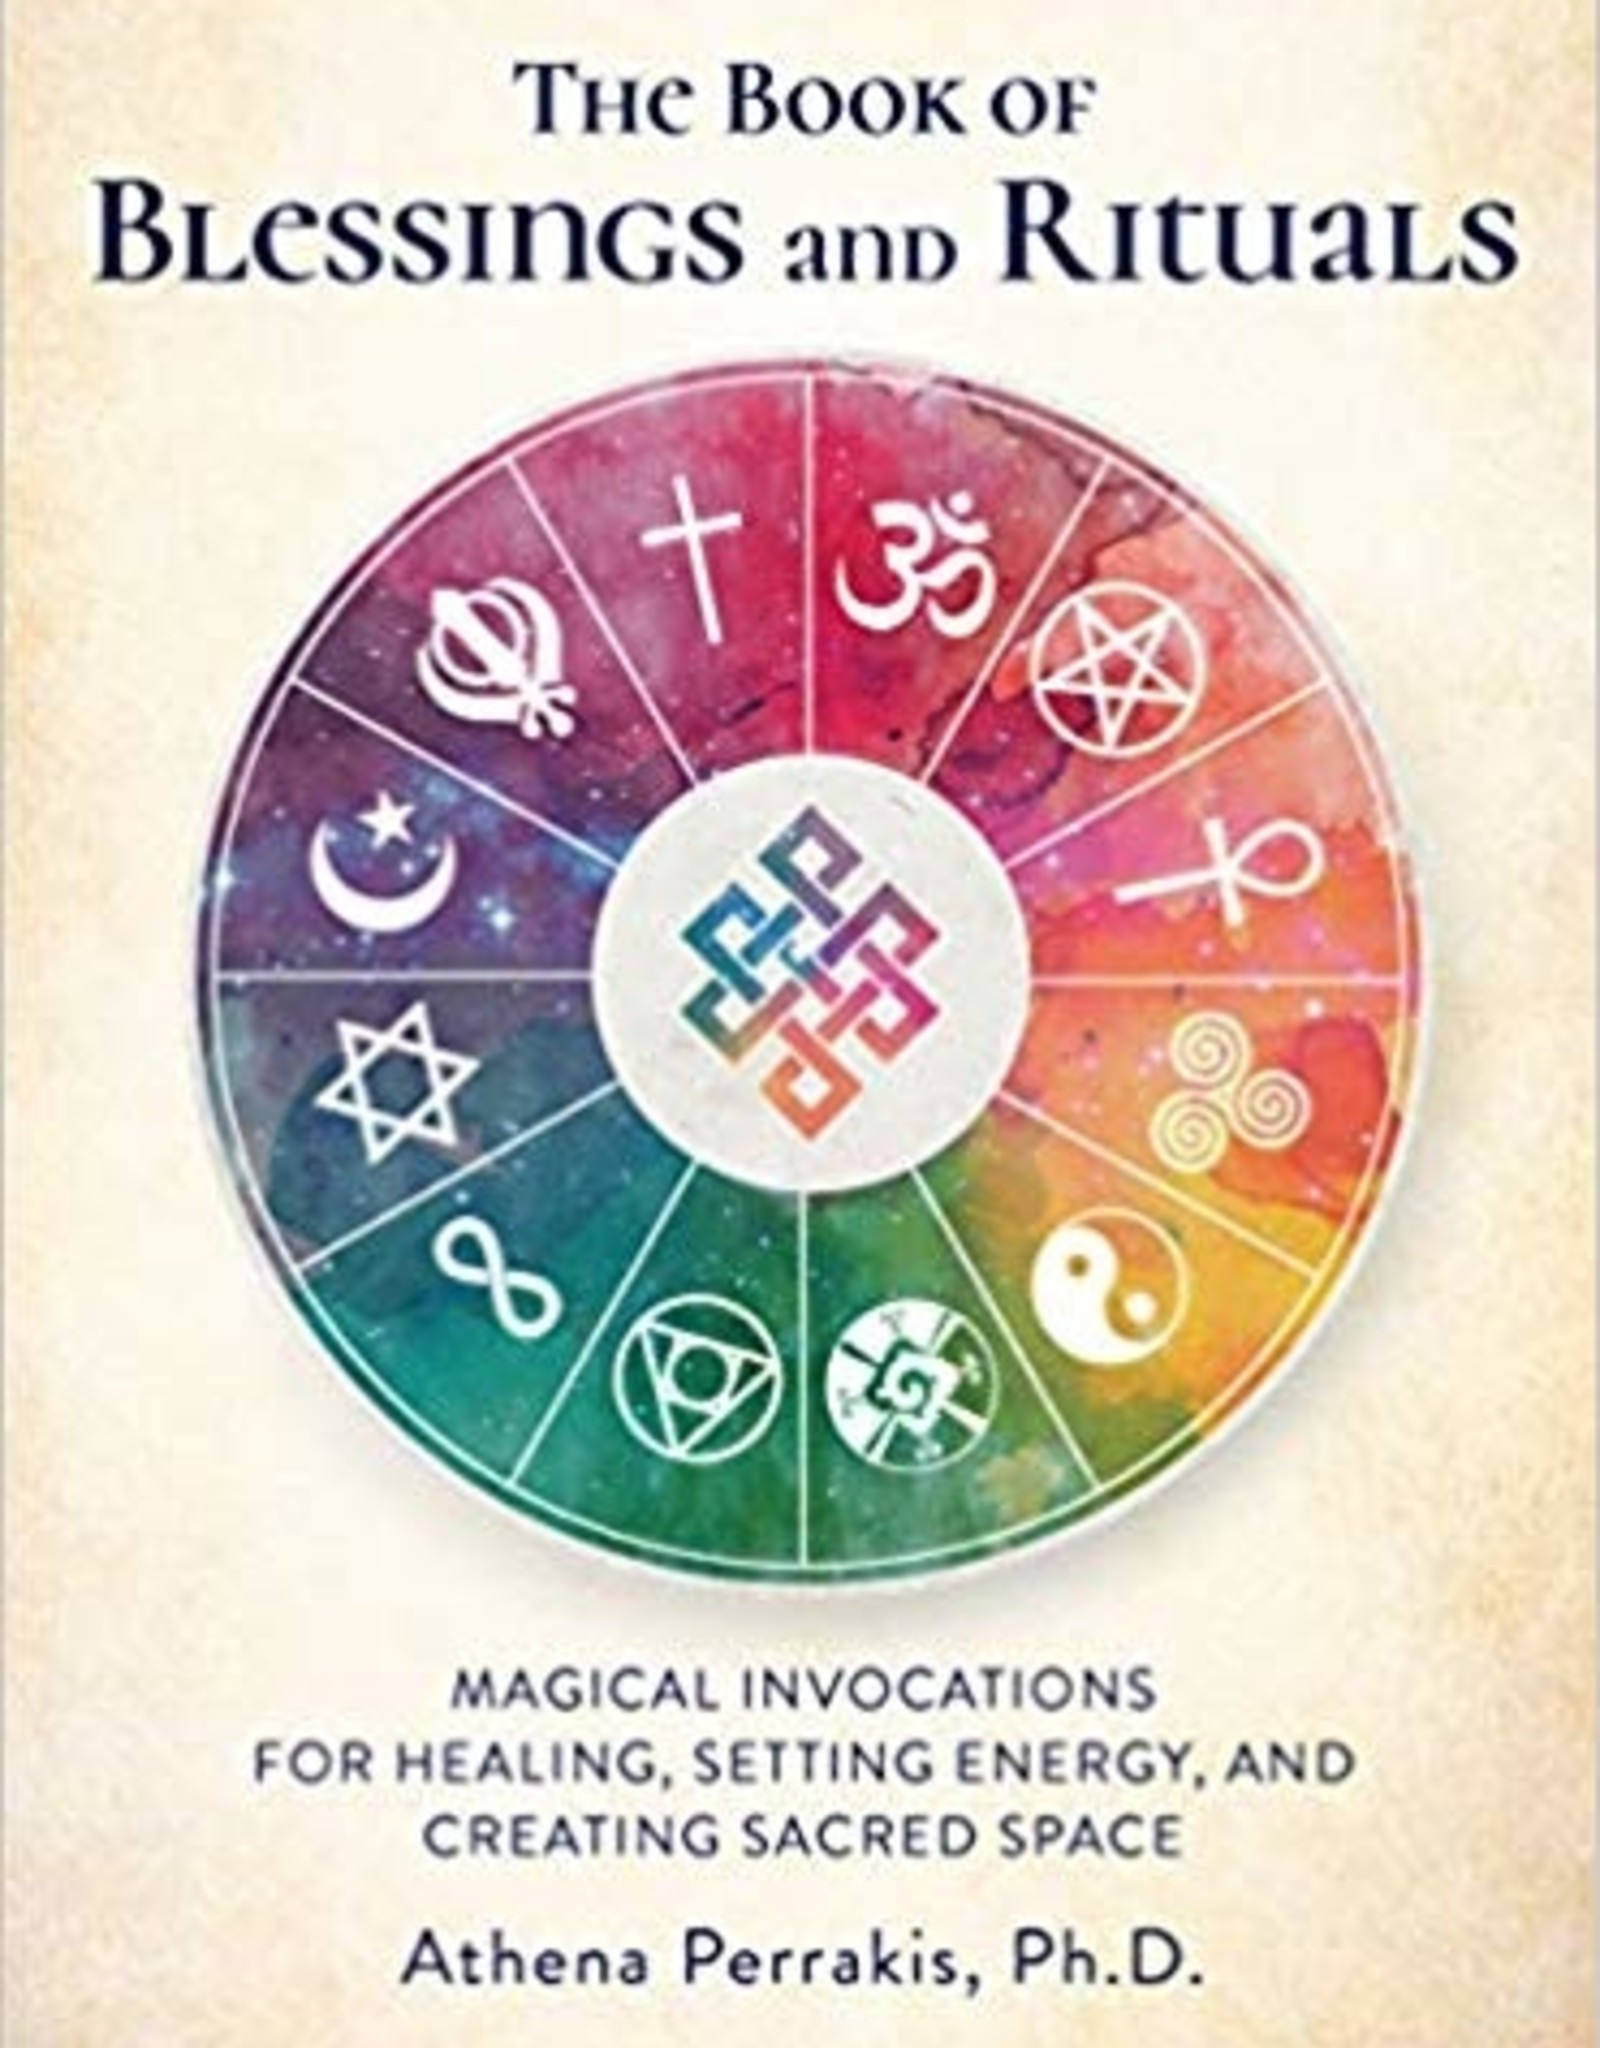 Quarto Knows Publishing Book of Blessings and Rituals: Magical Invocations for Healing, Setting Energy and Creating Sacred Space